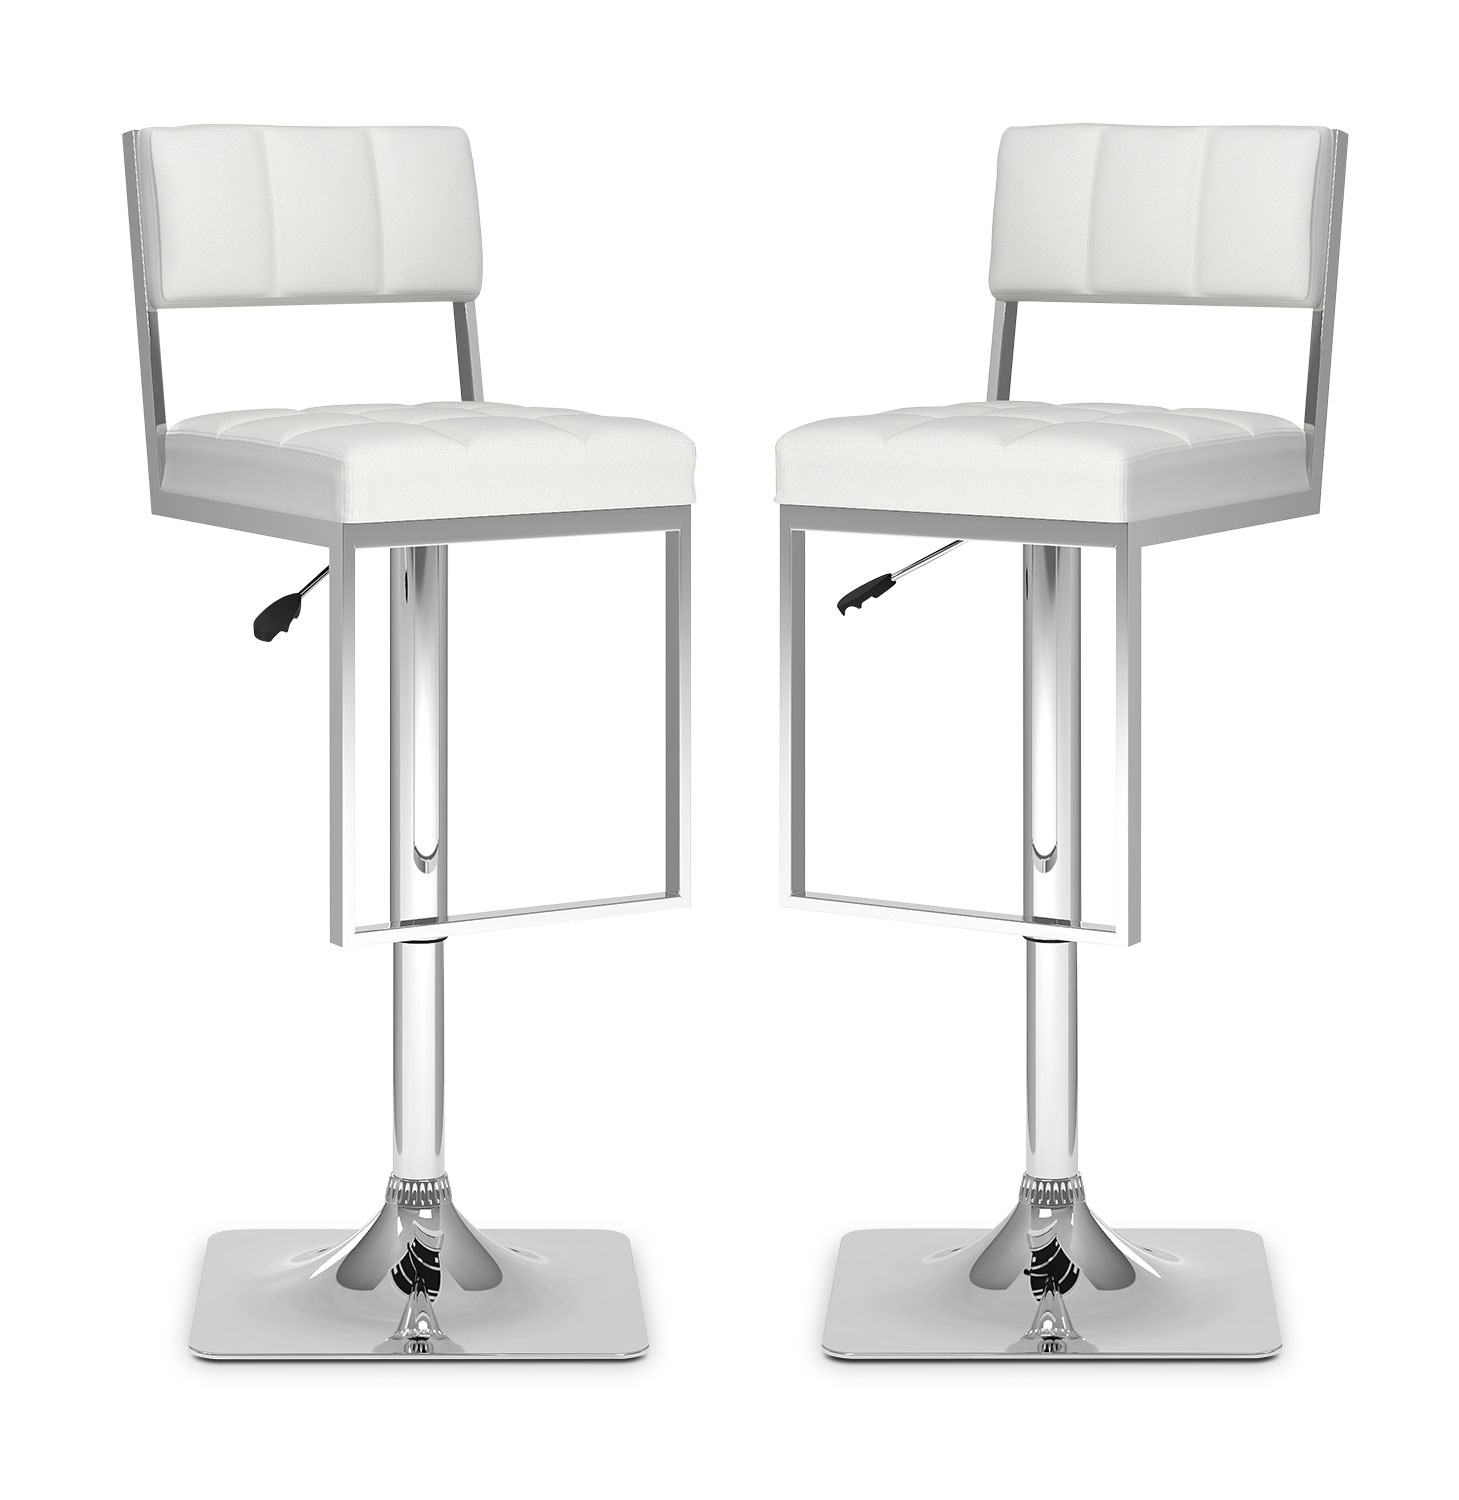 Dining Room Furniture - CorLiving Square-Tufted Wide Adjustable Bar Stool, Set of 2 – White